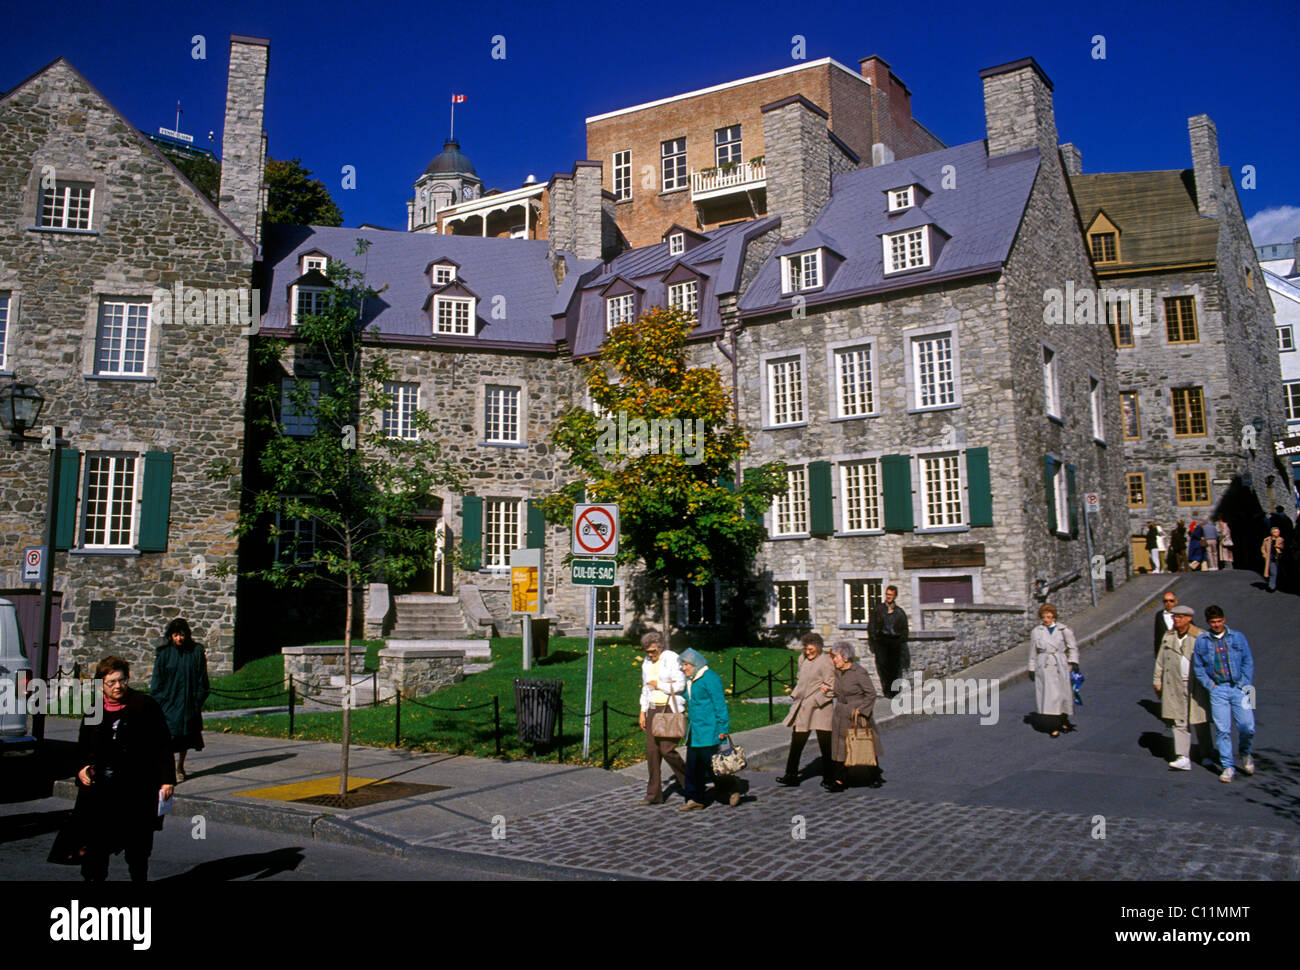 Maison Chevalier Quebec City Quebec Province Canada North America Stock Photo Royalty Free